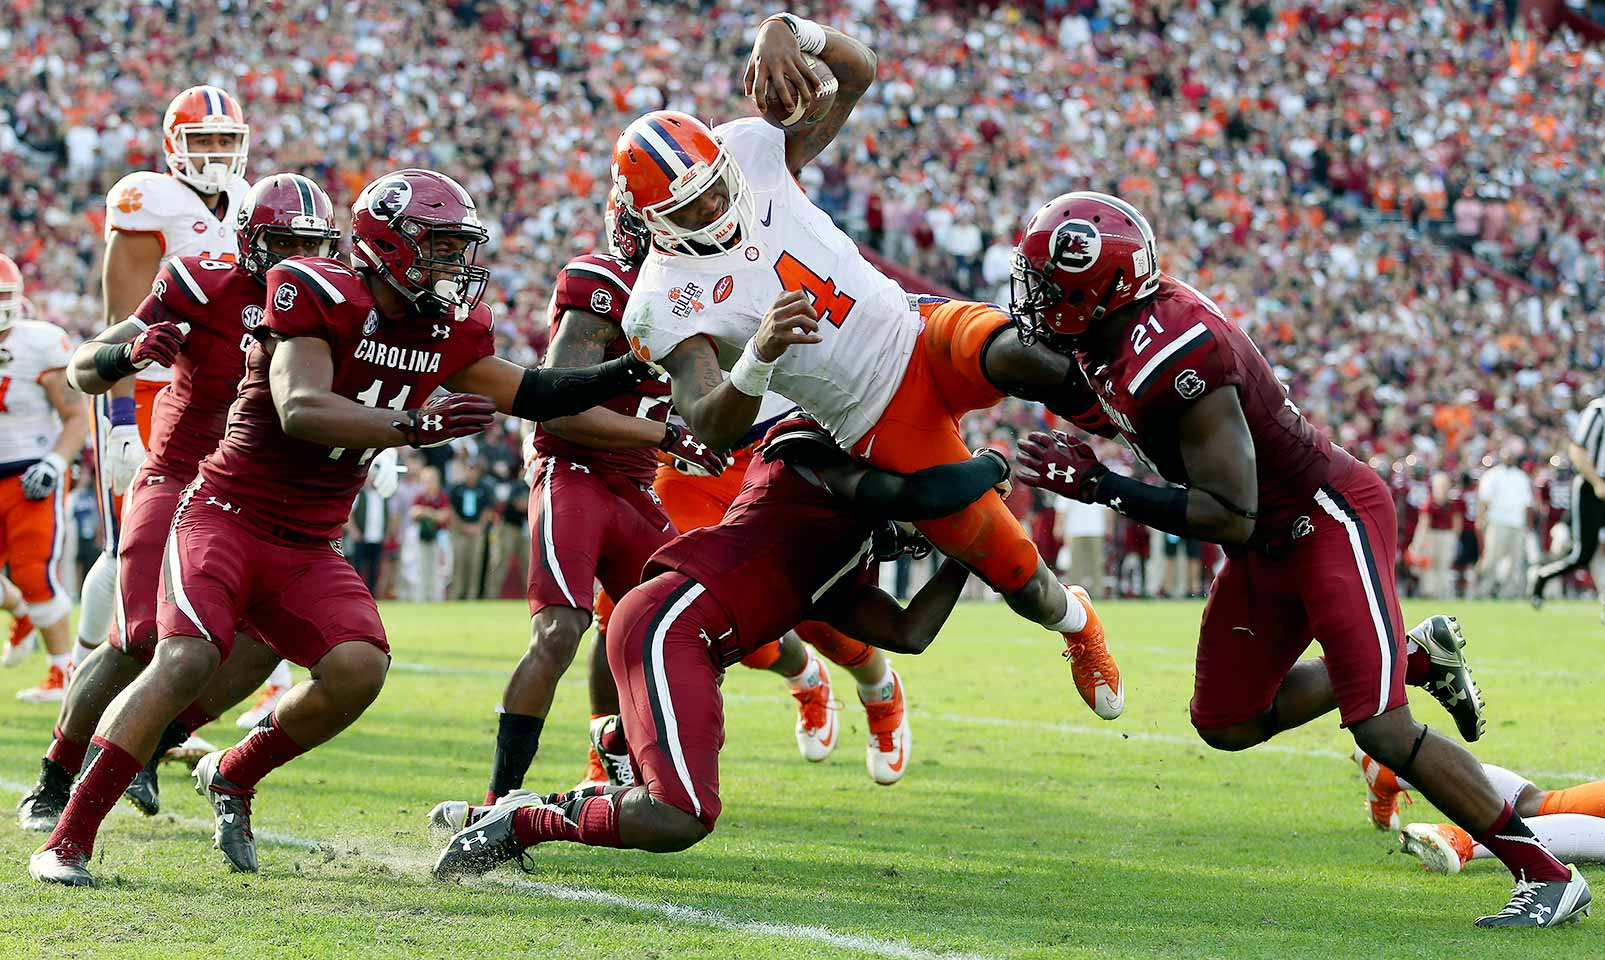 Clemson 37, South Carolina 32: With the Tigers needed him most, Deshaun Watson delivered. The quarterback led Clemson on a 75-yard drive, contributing all but three yards himself, to reach the end zone and put the Gamecocks away after they closed within three in the fourth quarter.